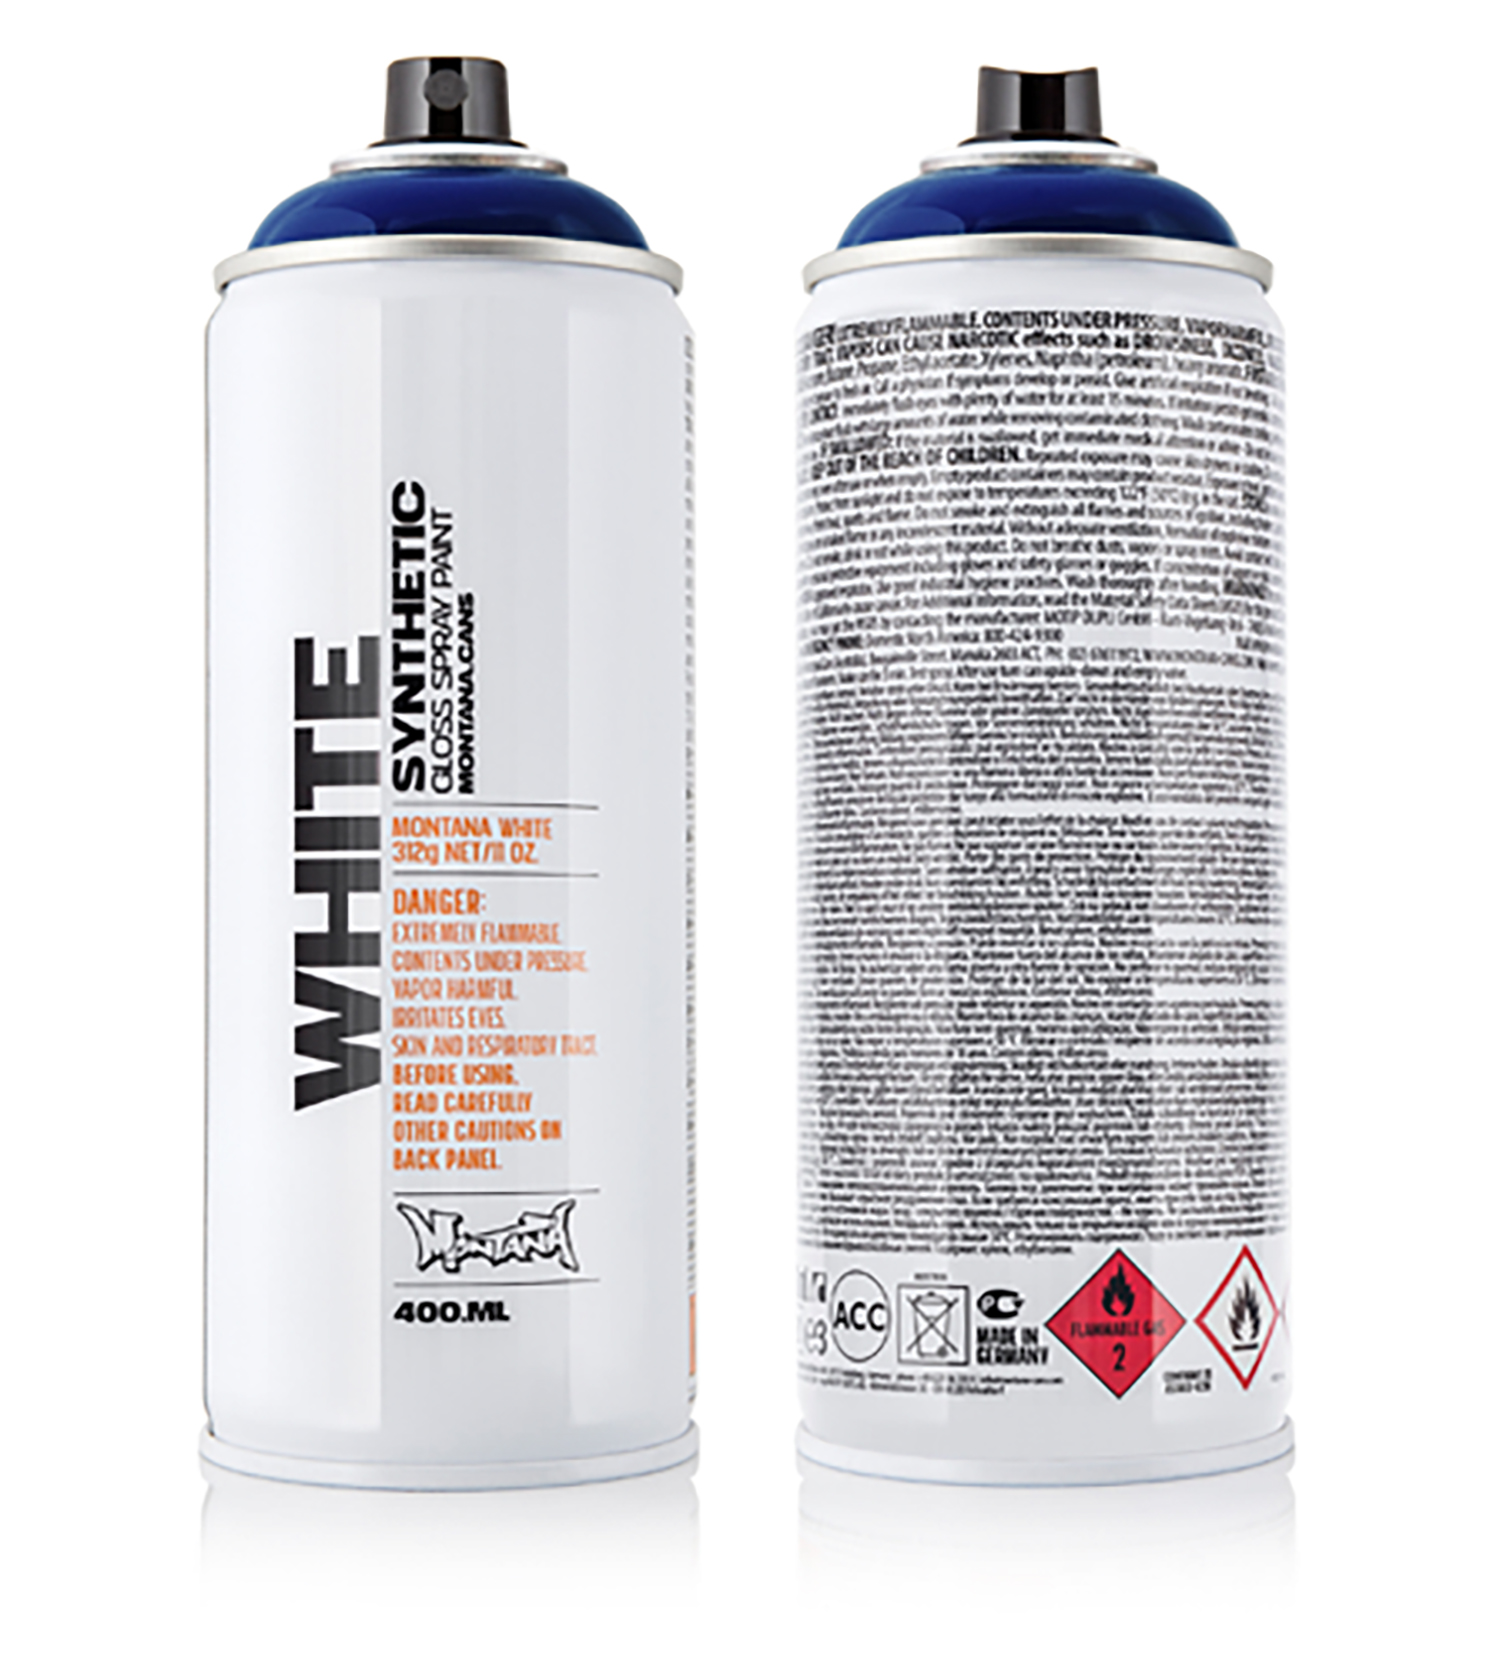 MONTANA-WHITE-SPRAY-400ML-5080